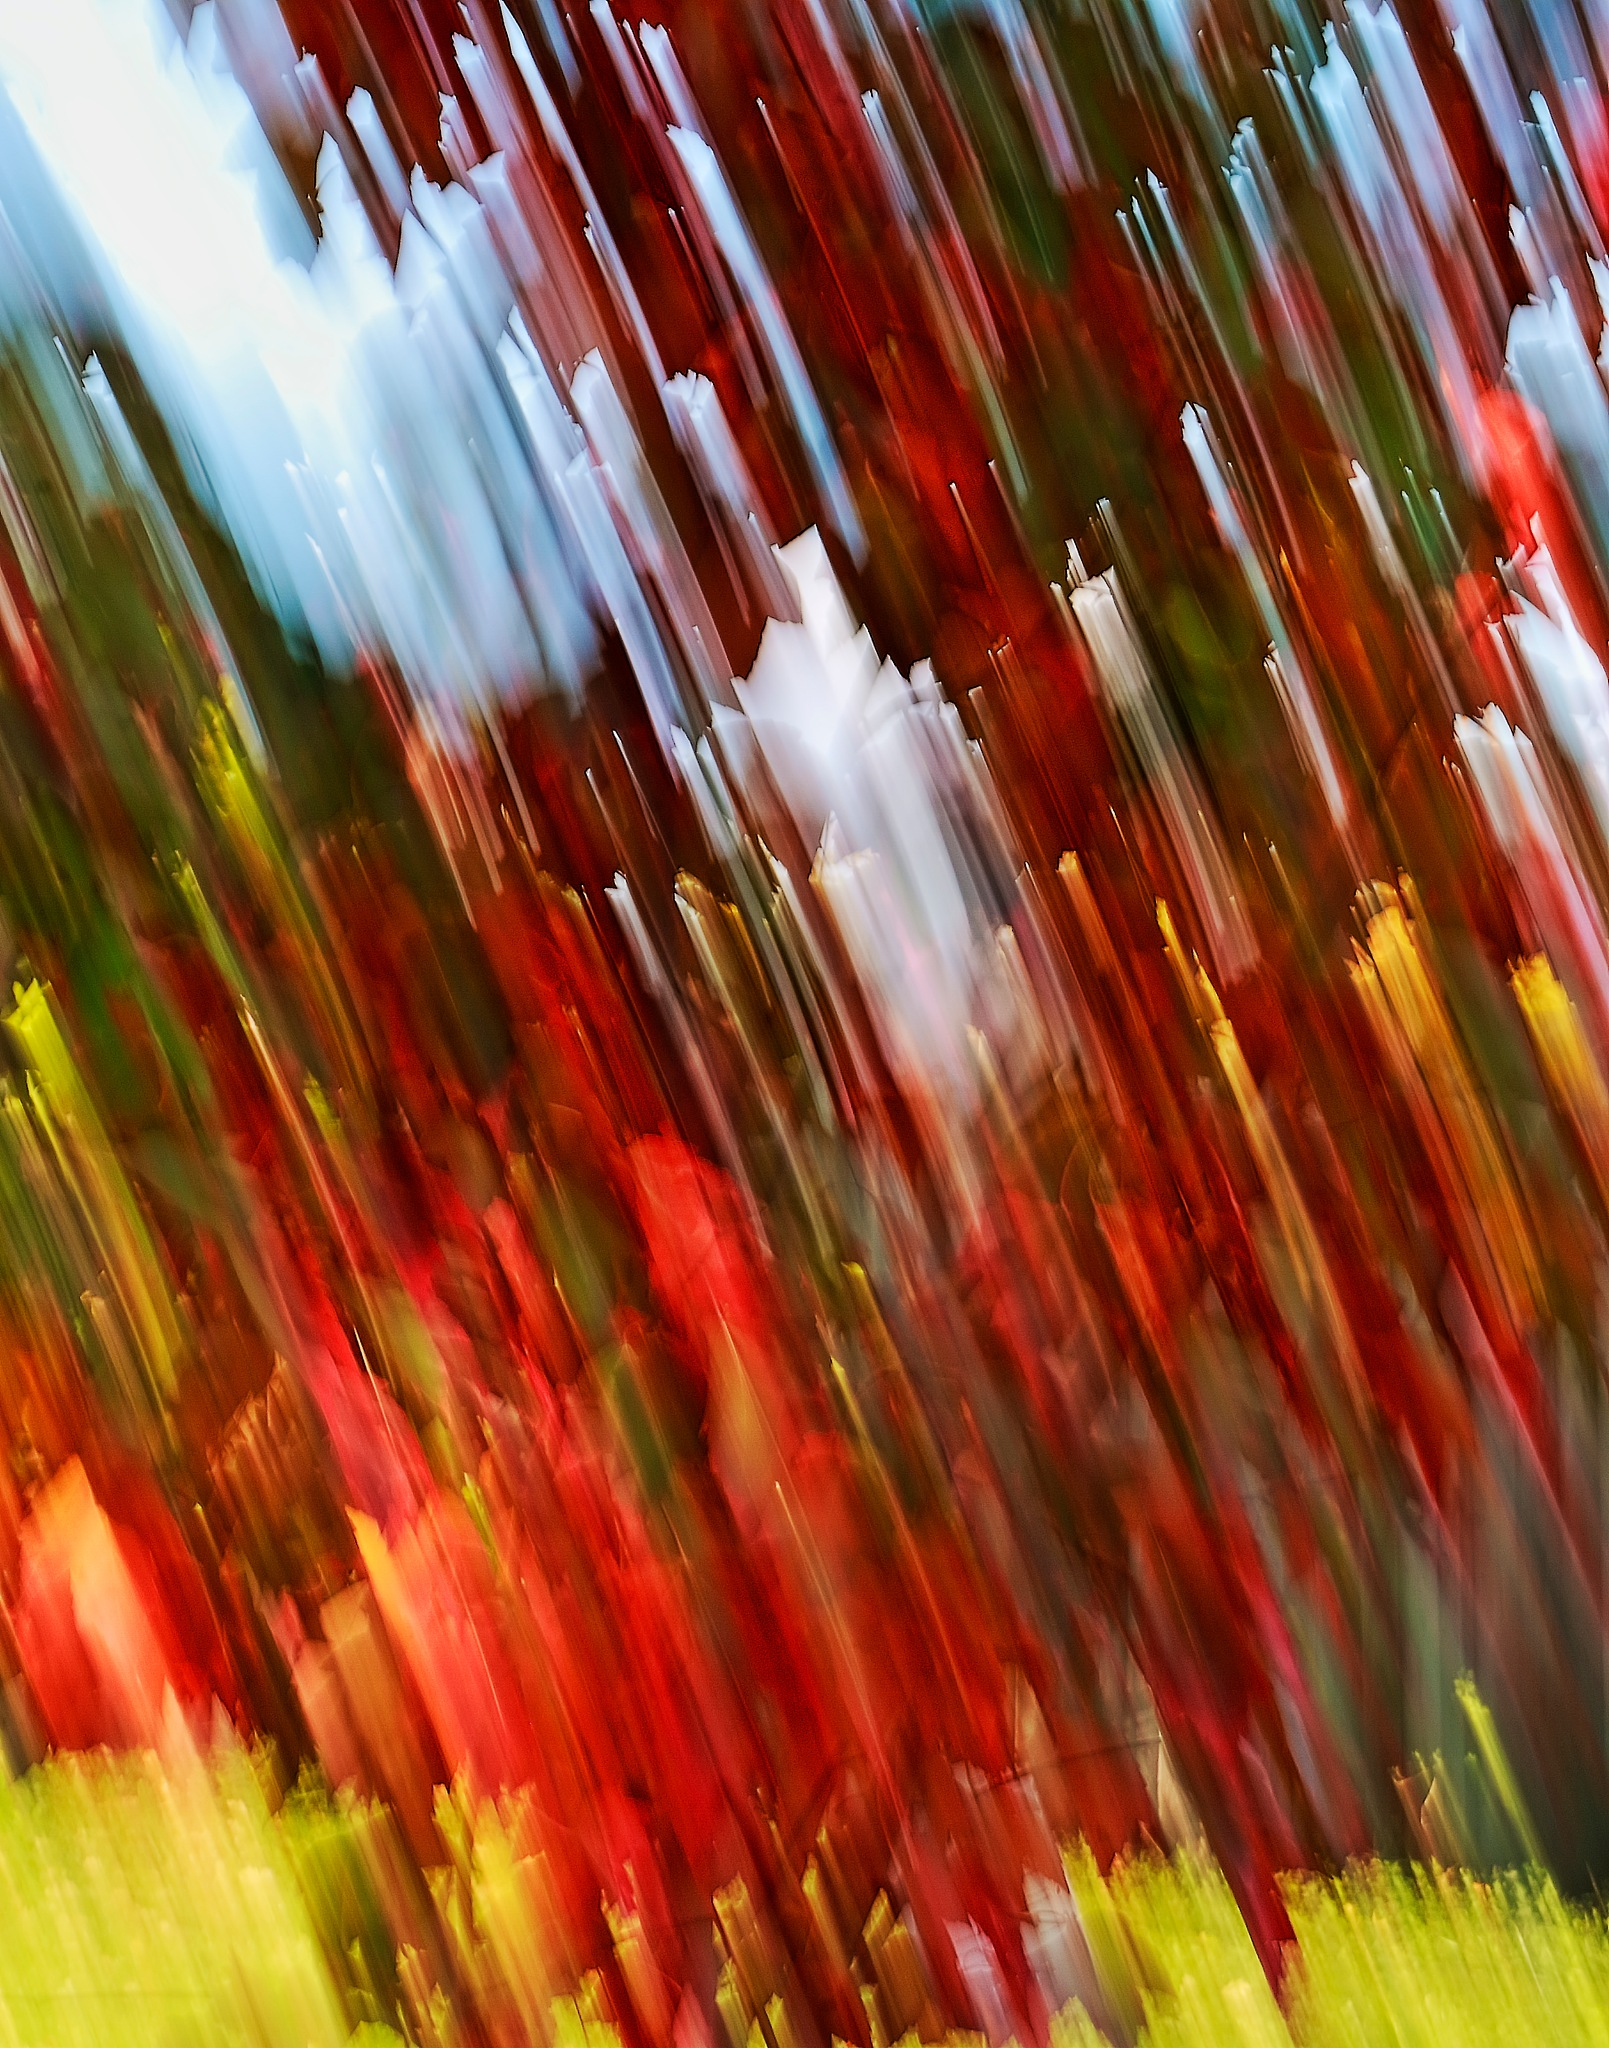 Autumn colors Abstract #3 by Daniel J. Ruggiero